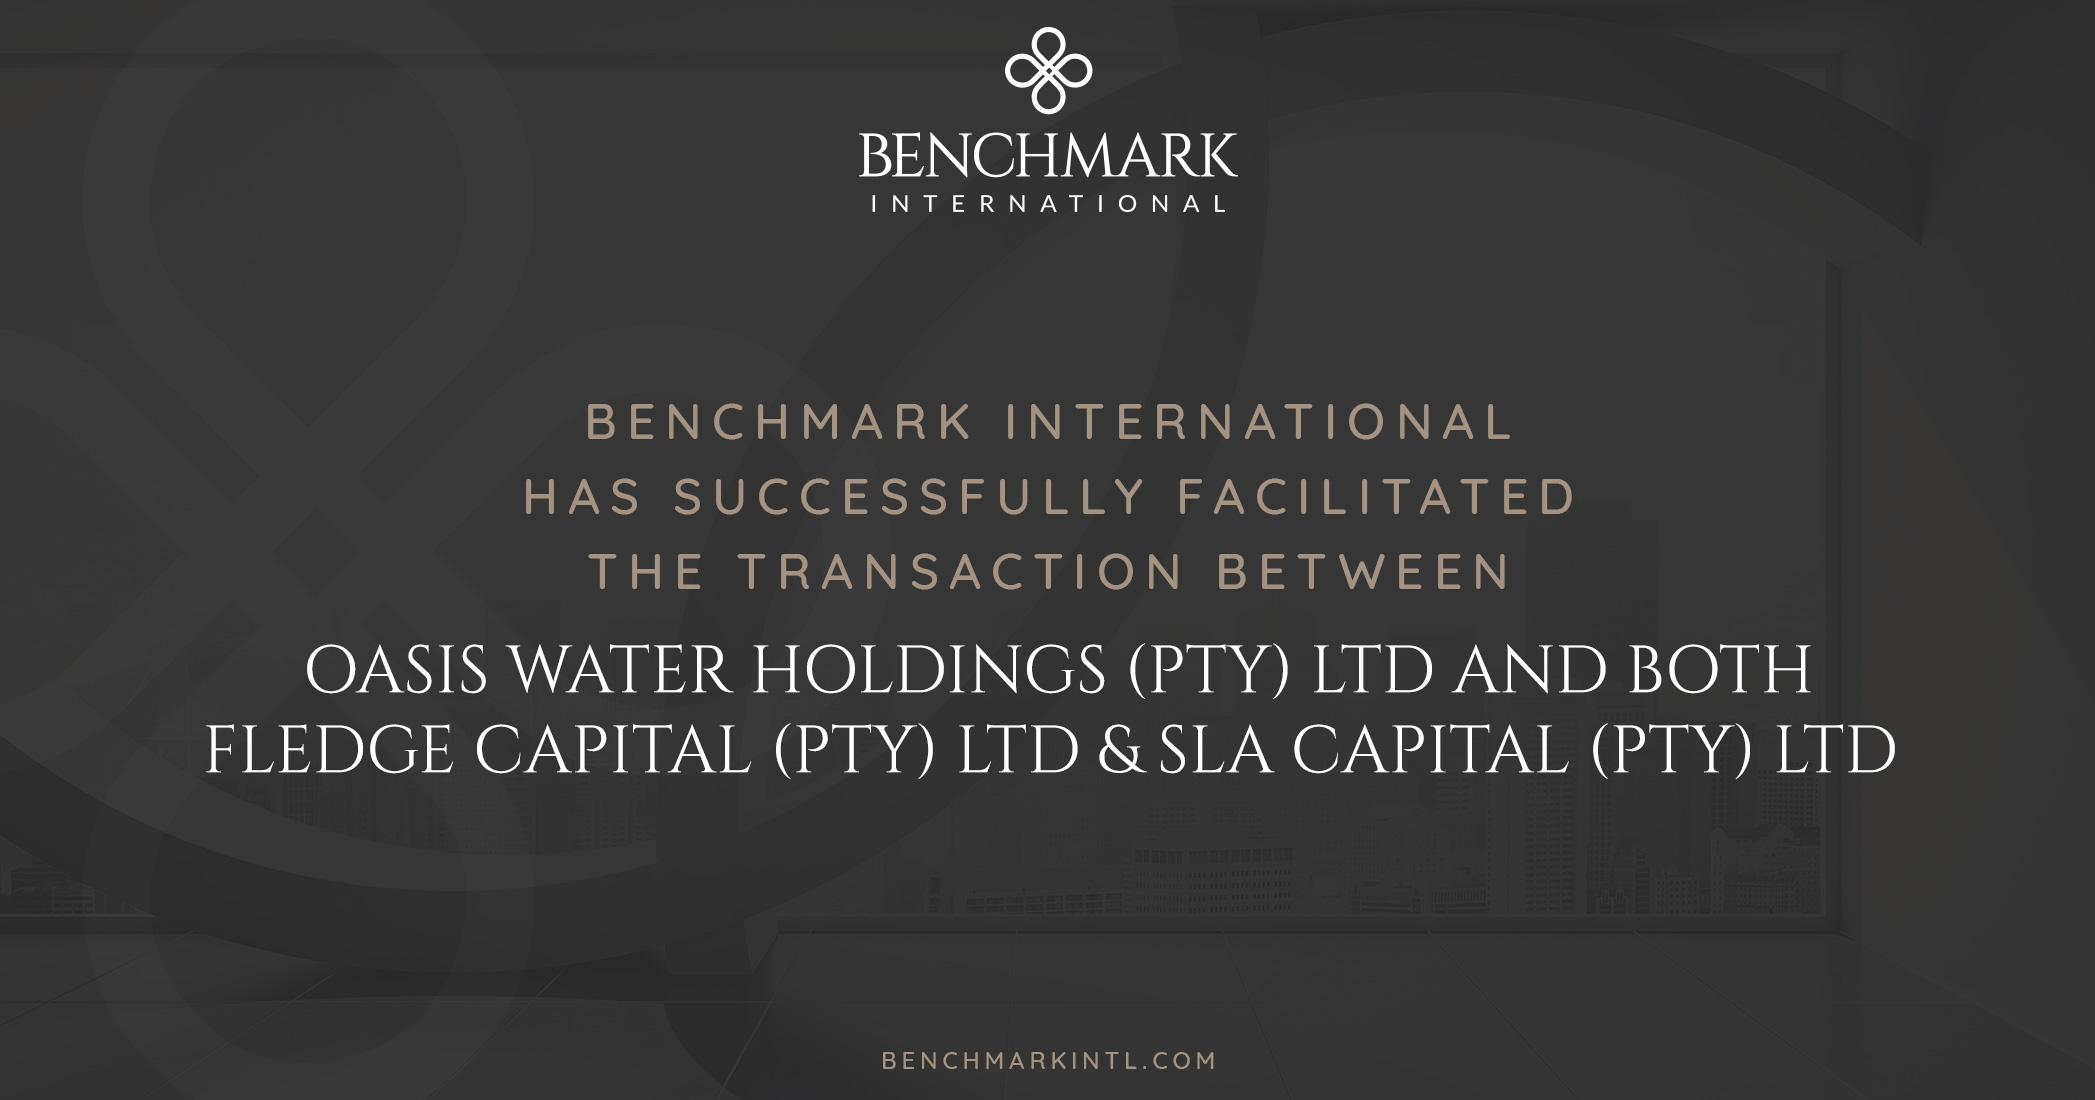 Benchmark International Successfully Facilitated the Transaction Between Oasis Water Holdings (PTY) LTD and Both Fledge Capital (PTY) LTD & SLA Capital (PTY) LTD